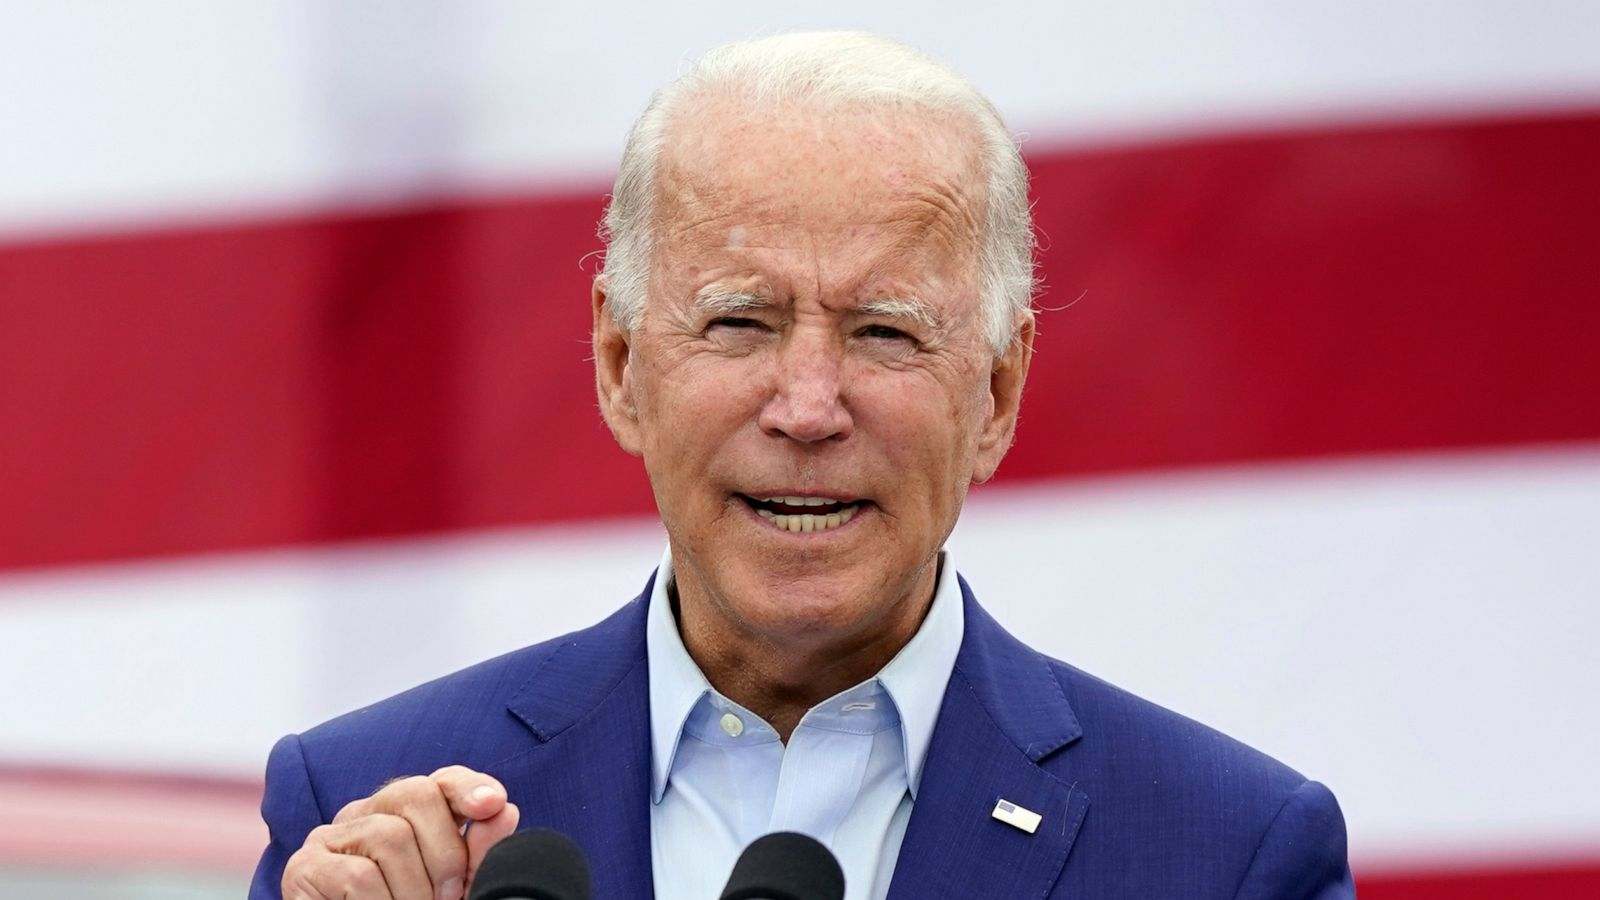 Biden Administration Defends Big Tax Hikes And $2 Trillion Spending